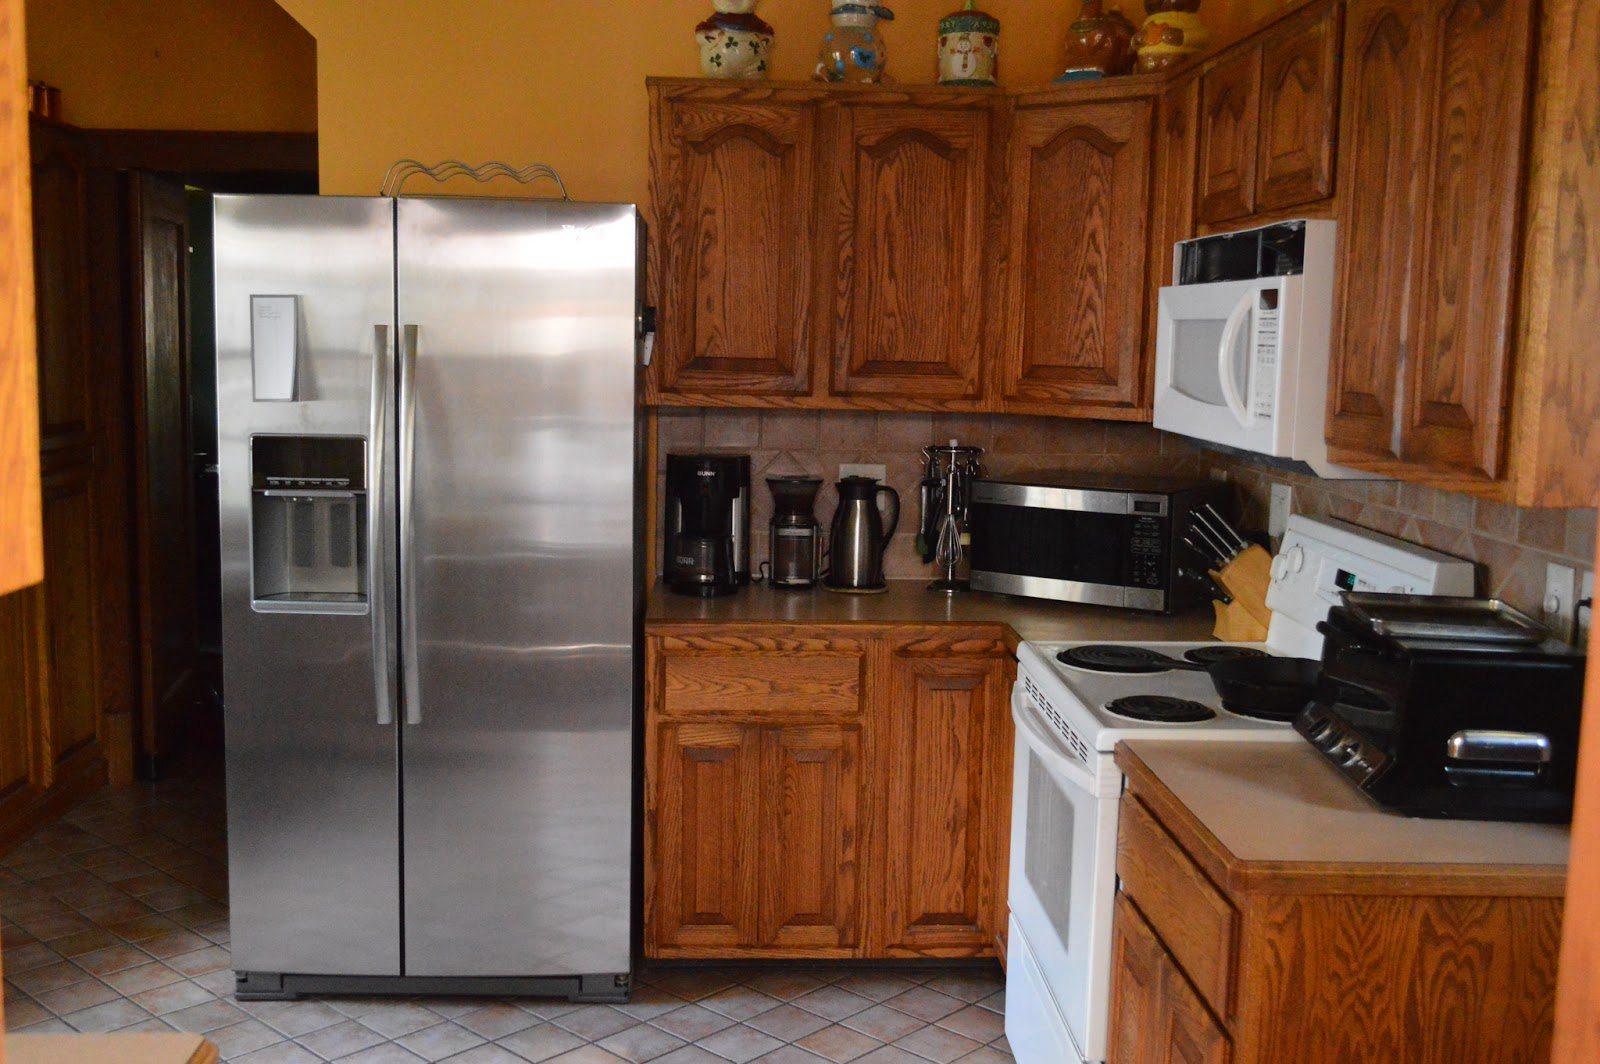 Counter Depth Refrigerator In Kitchen Viewing Gallery